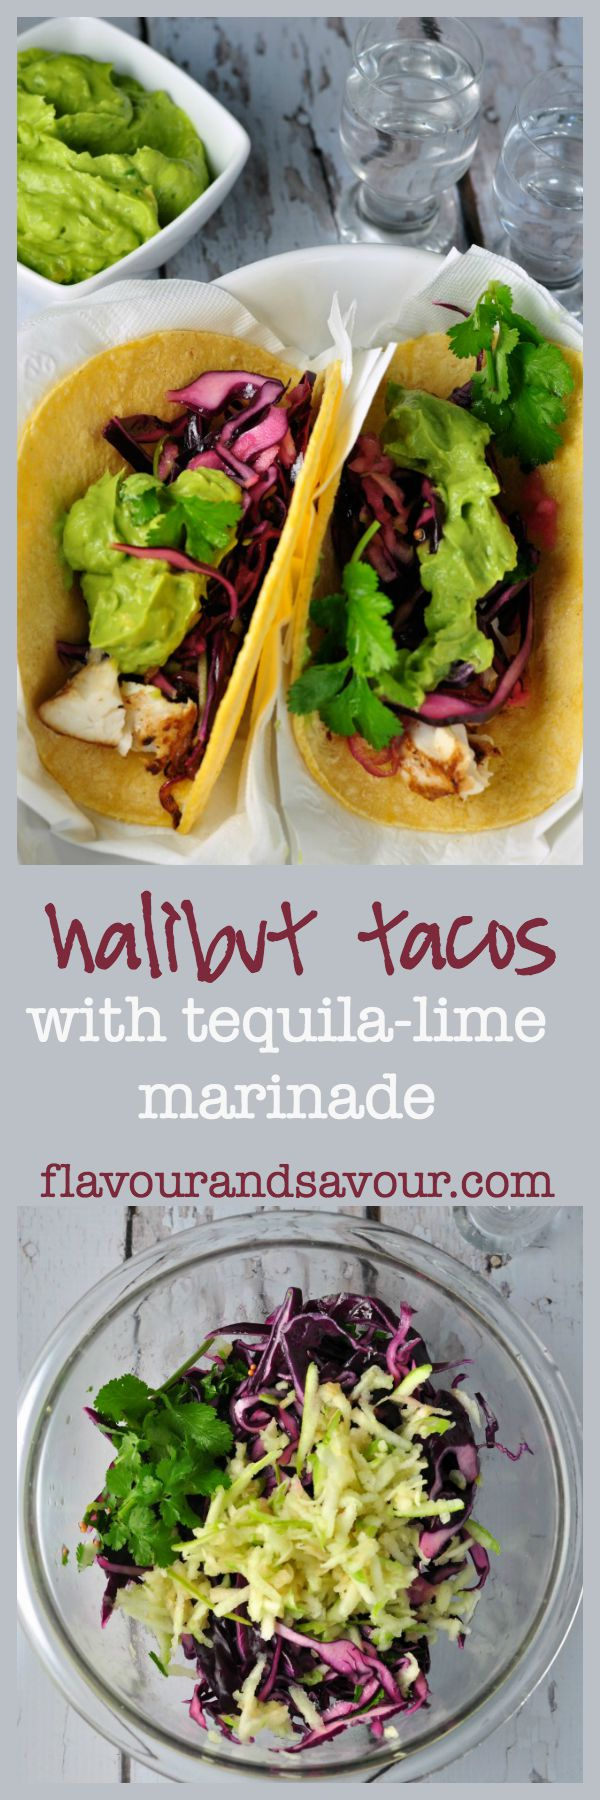 Halibut tacos with tequila lime marinade and red cabbage slaw. Serve with creamy guacamole. Perfect portable hand food!